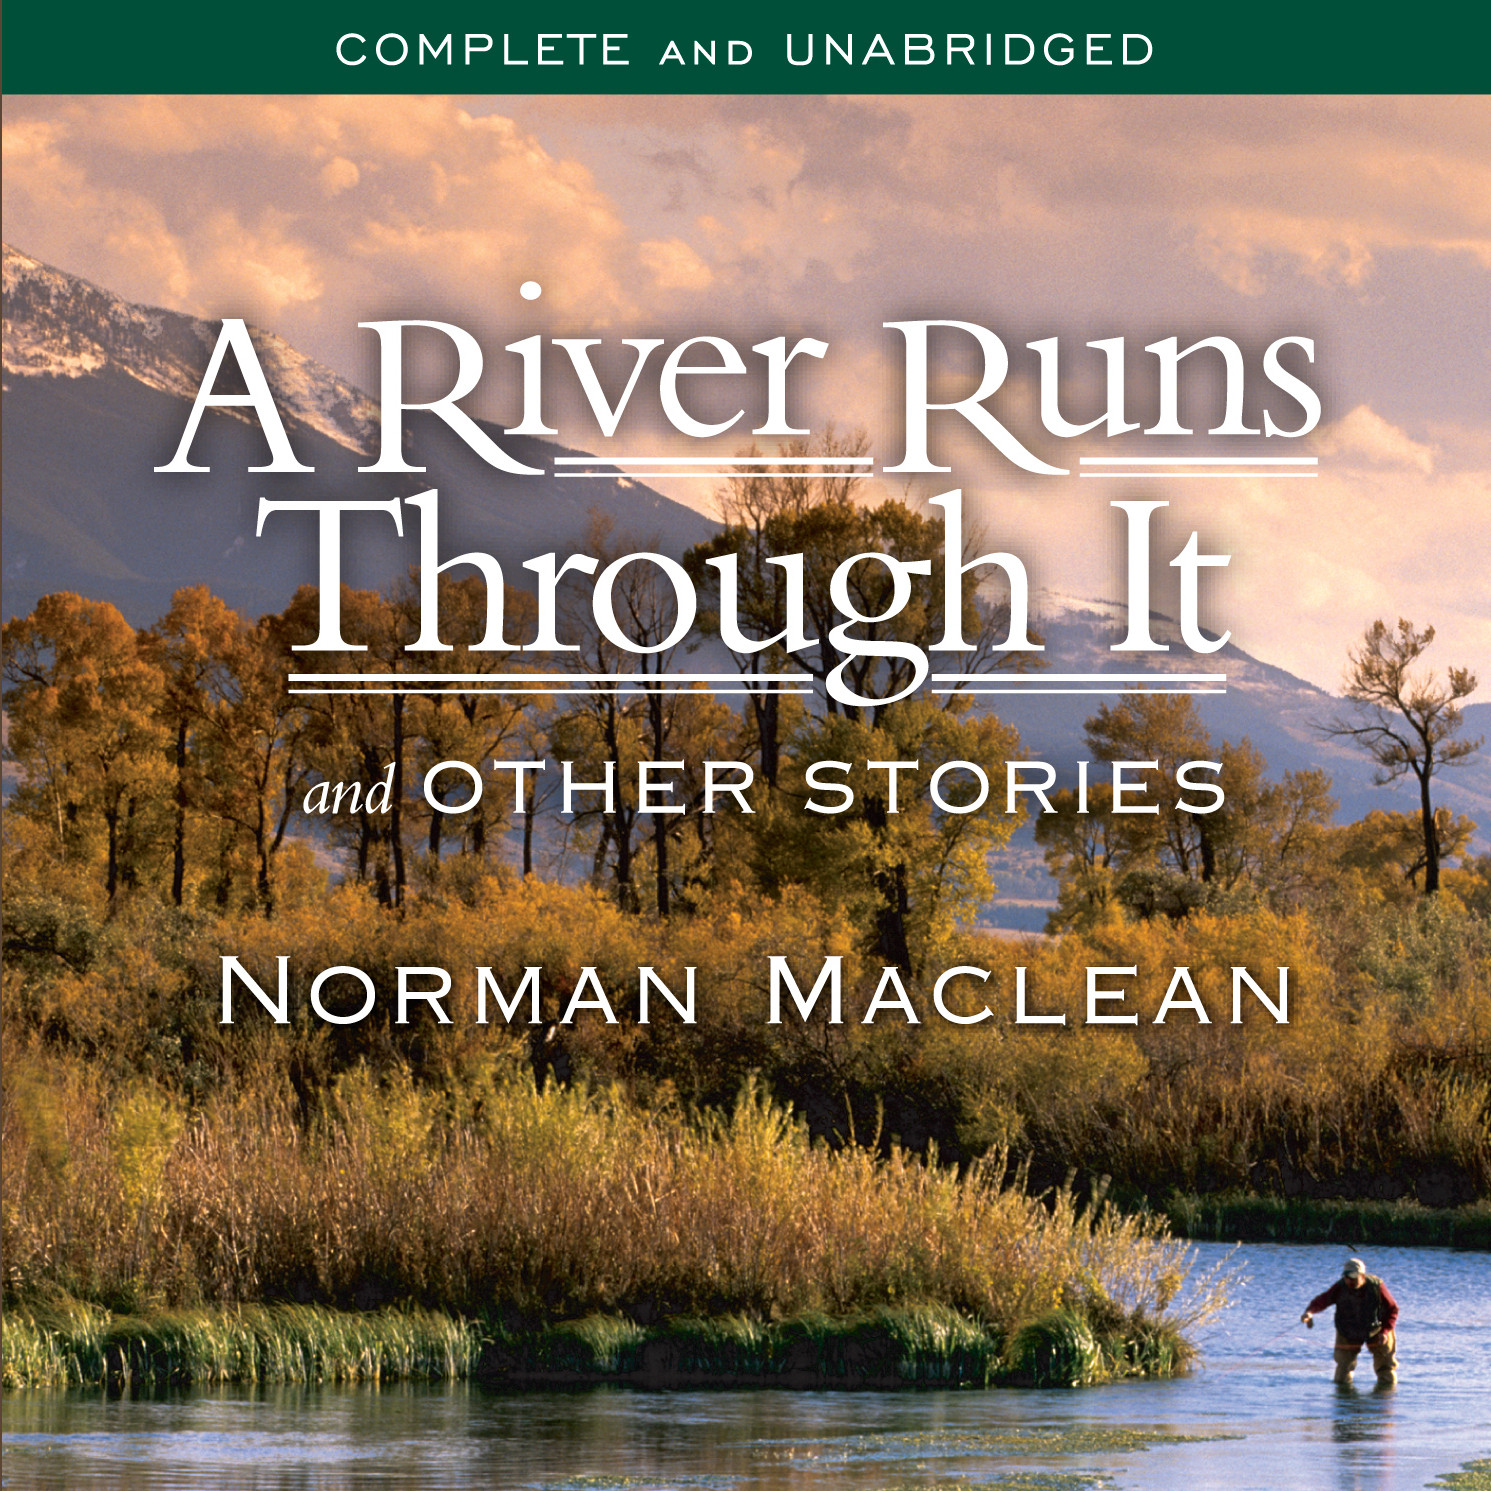 Printable A River Runs Through It and Other Stories Audiobook Cover Art